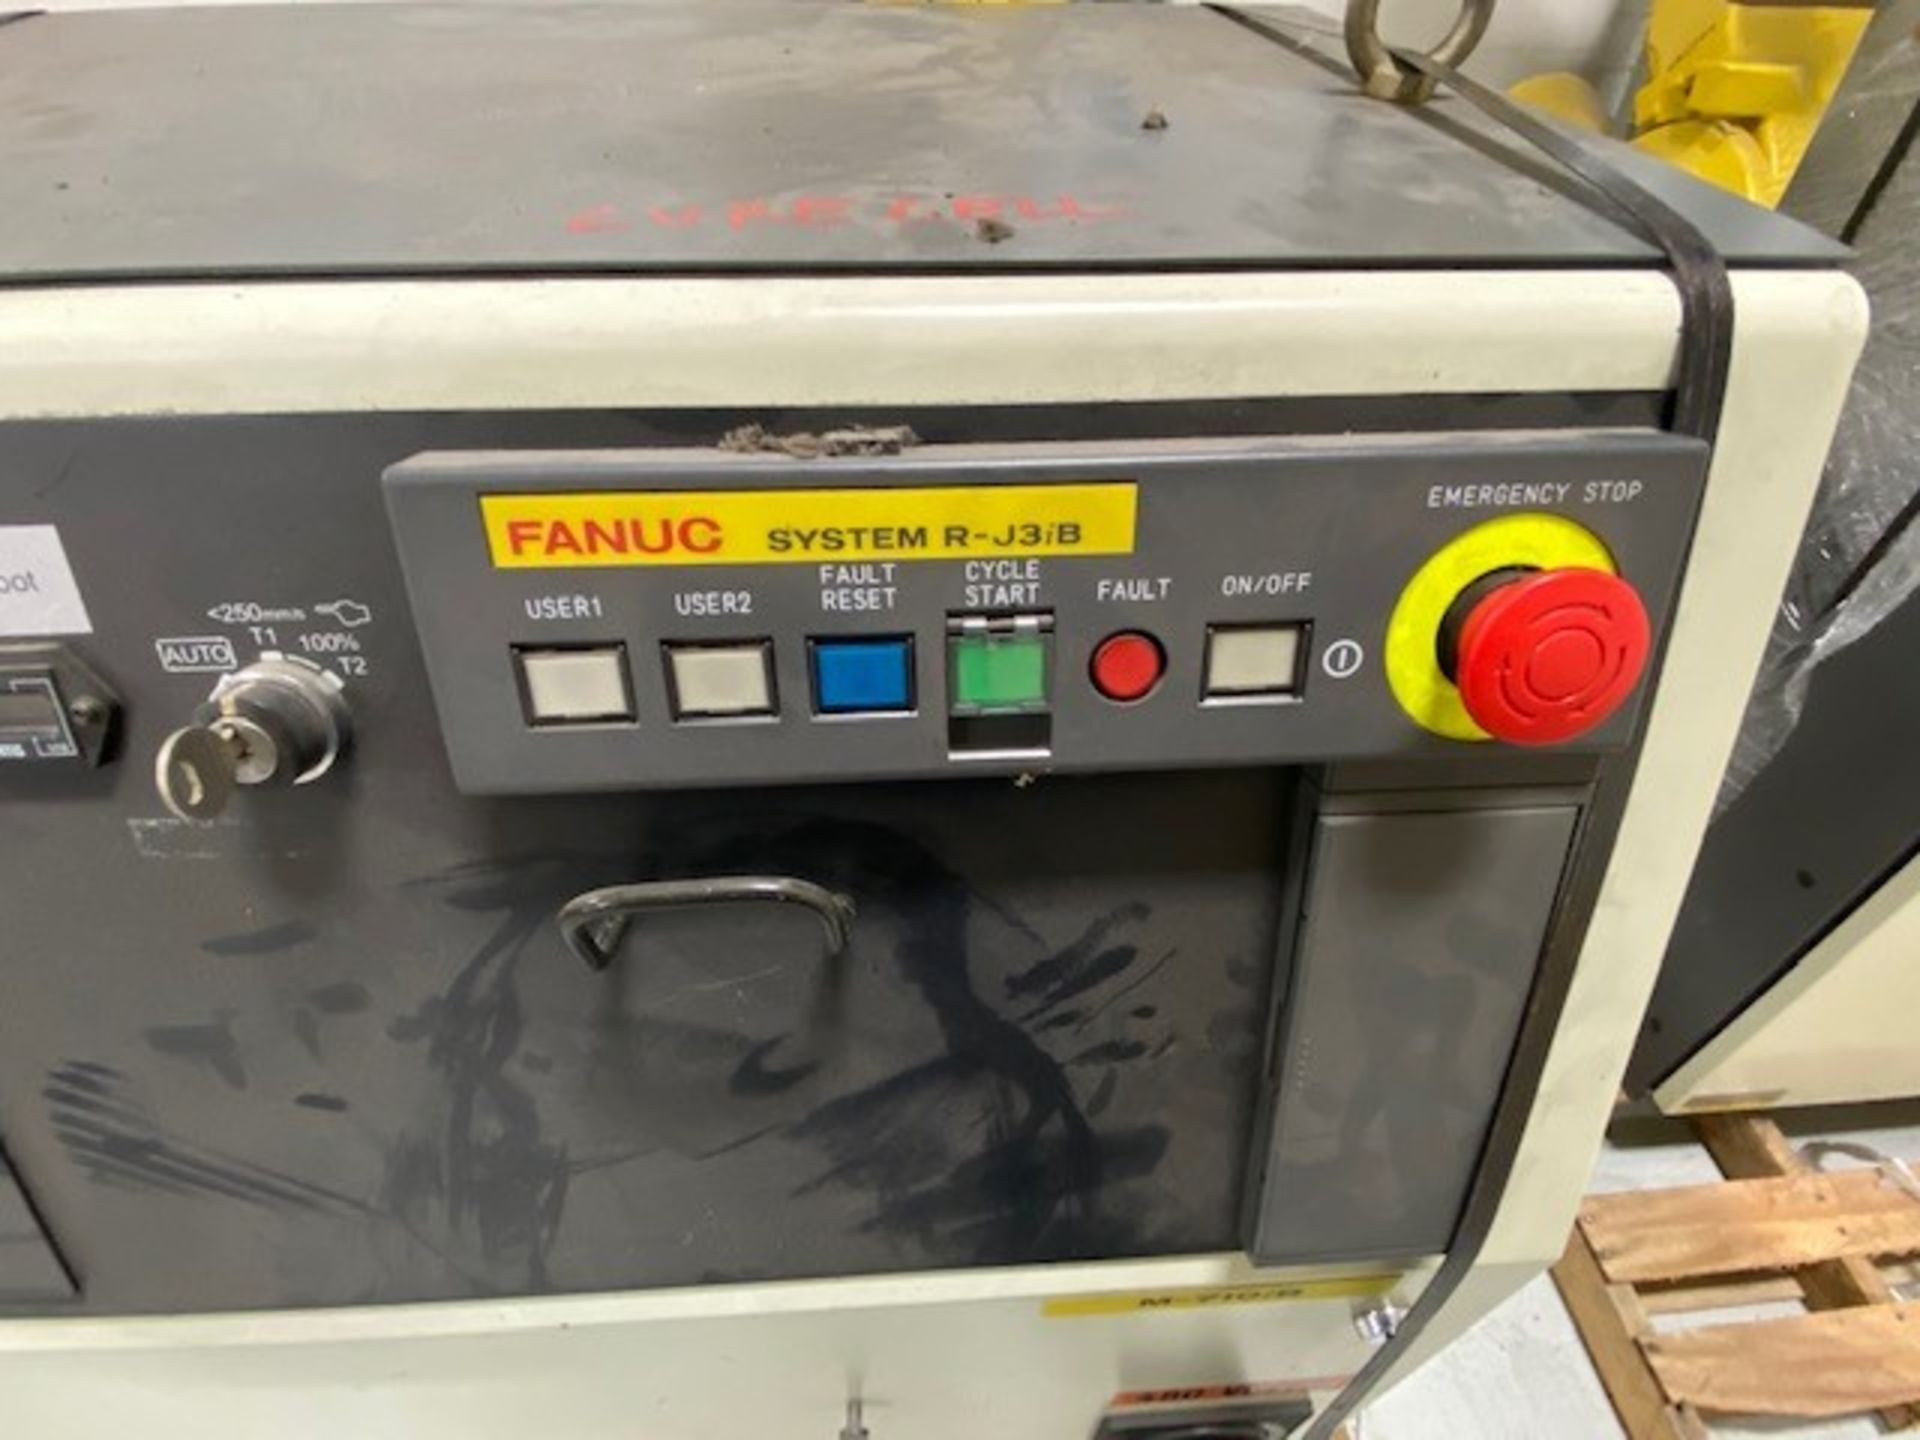 FANUC M710iB/70 WITH R-J3IB CONTROLS, TEACH PENDANT & CABLES, SN 70551 - Image 5 of 9